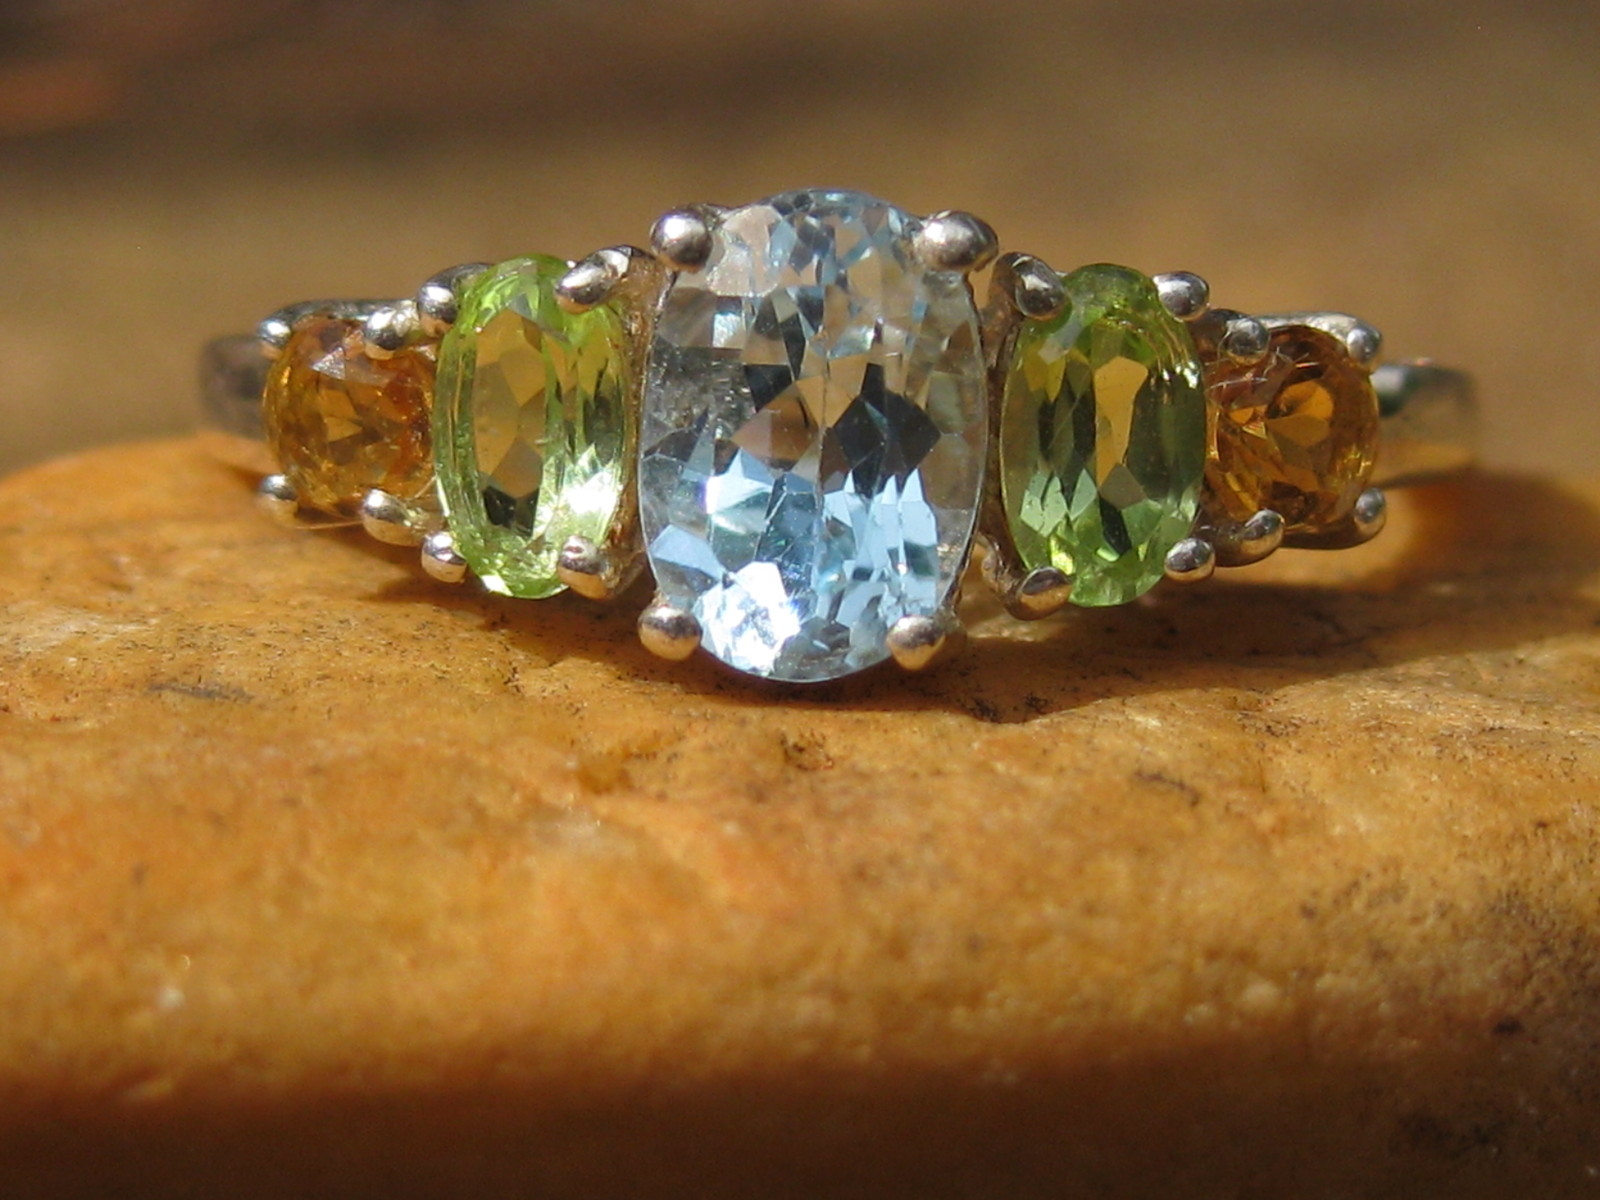 Primary image for Haunted ring 5 Roman Gods/Goddesses live the life of wealth and luxury